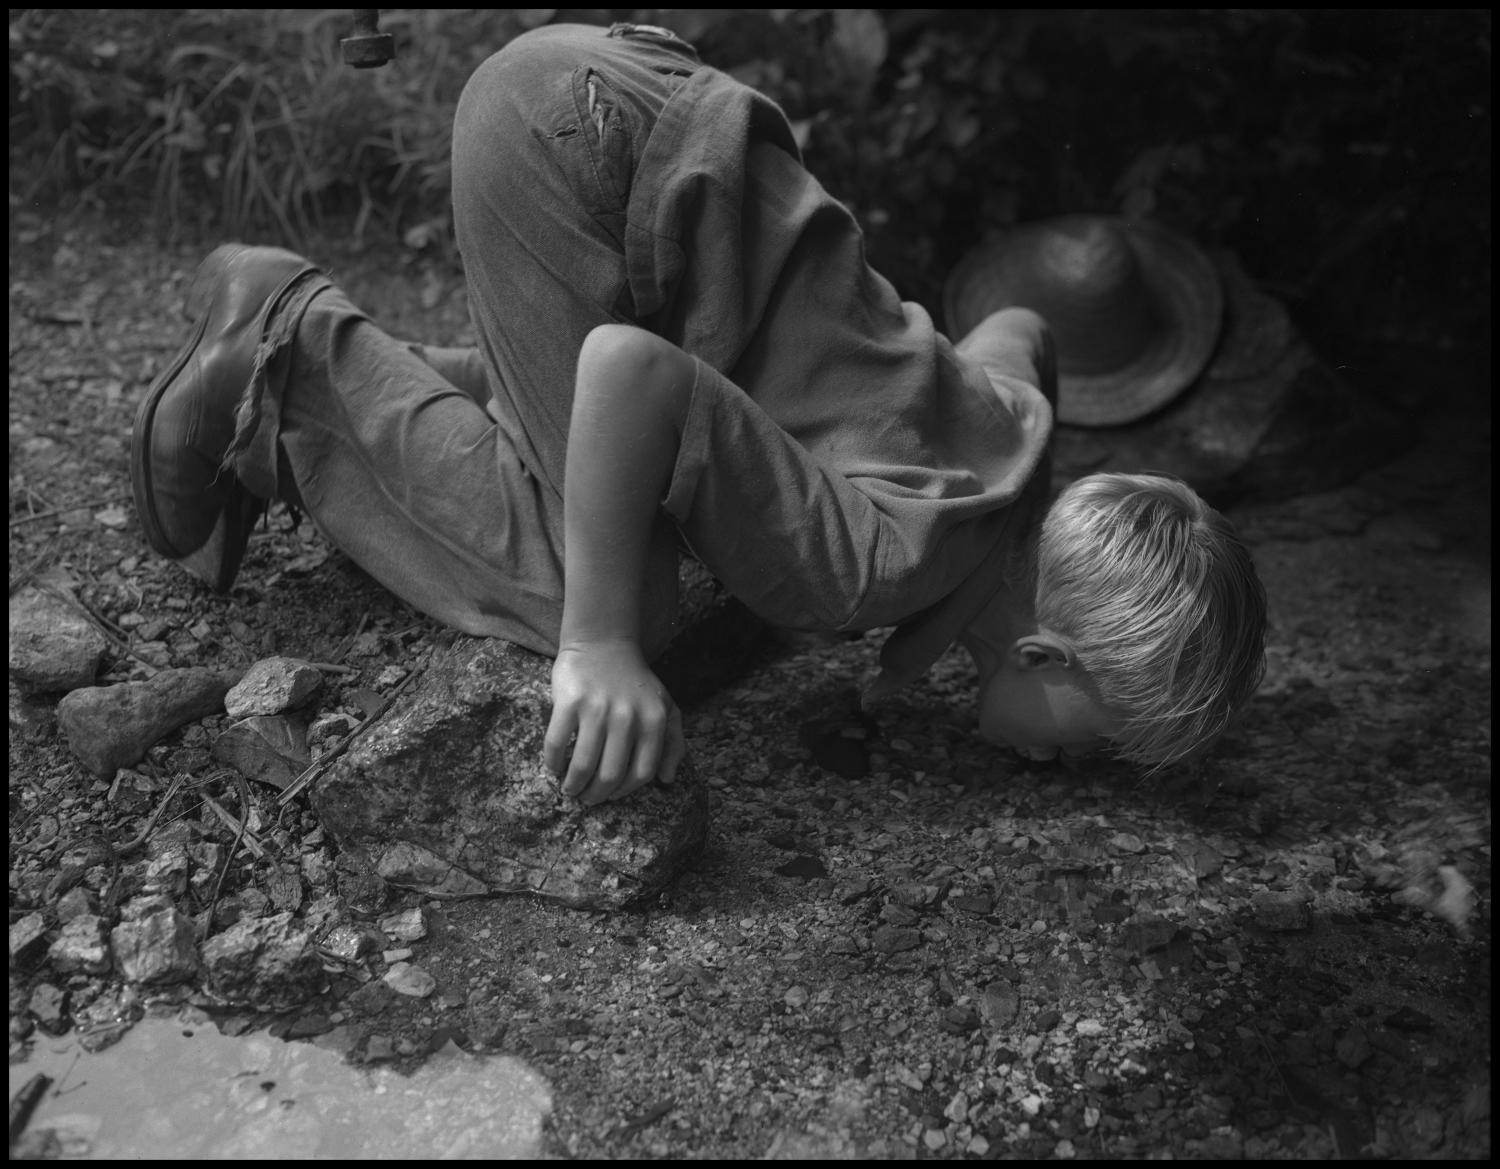 [Young boy drinking water from the creek], Photograph of an unidentified boy kneeling over to drink water from a creek. In the image, the boy is wearing a short-sleeved shirt and pants, his straw hat can be seen resting on the side of the water.,